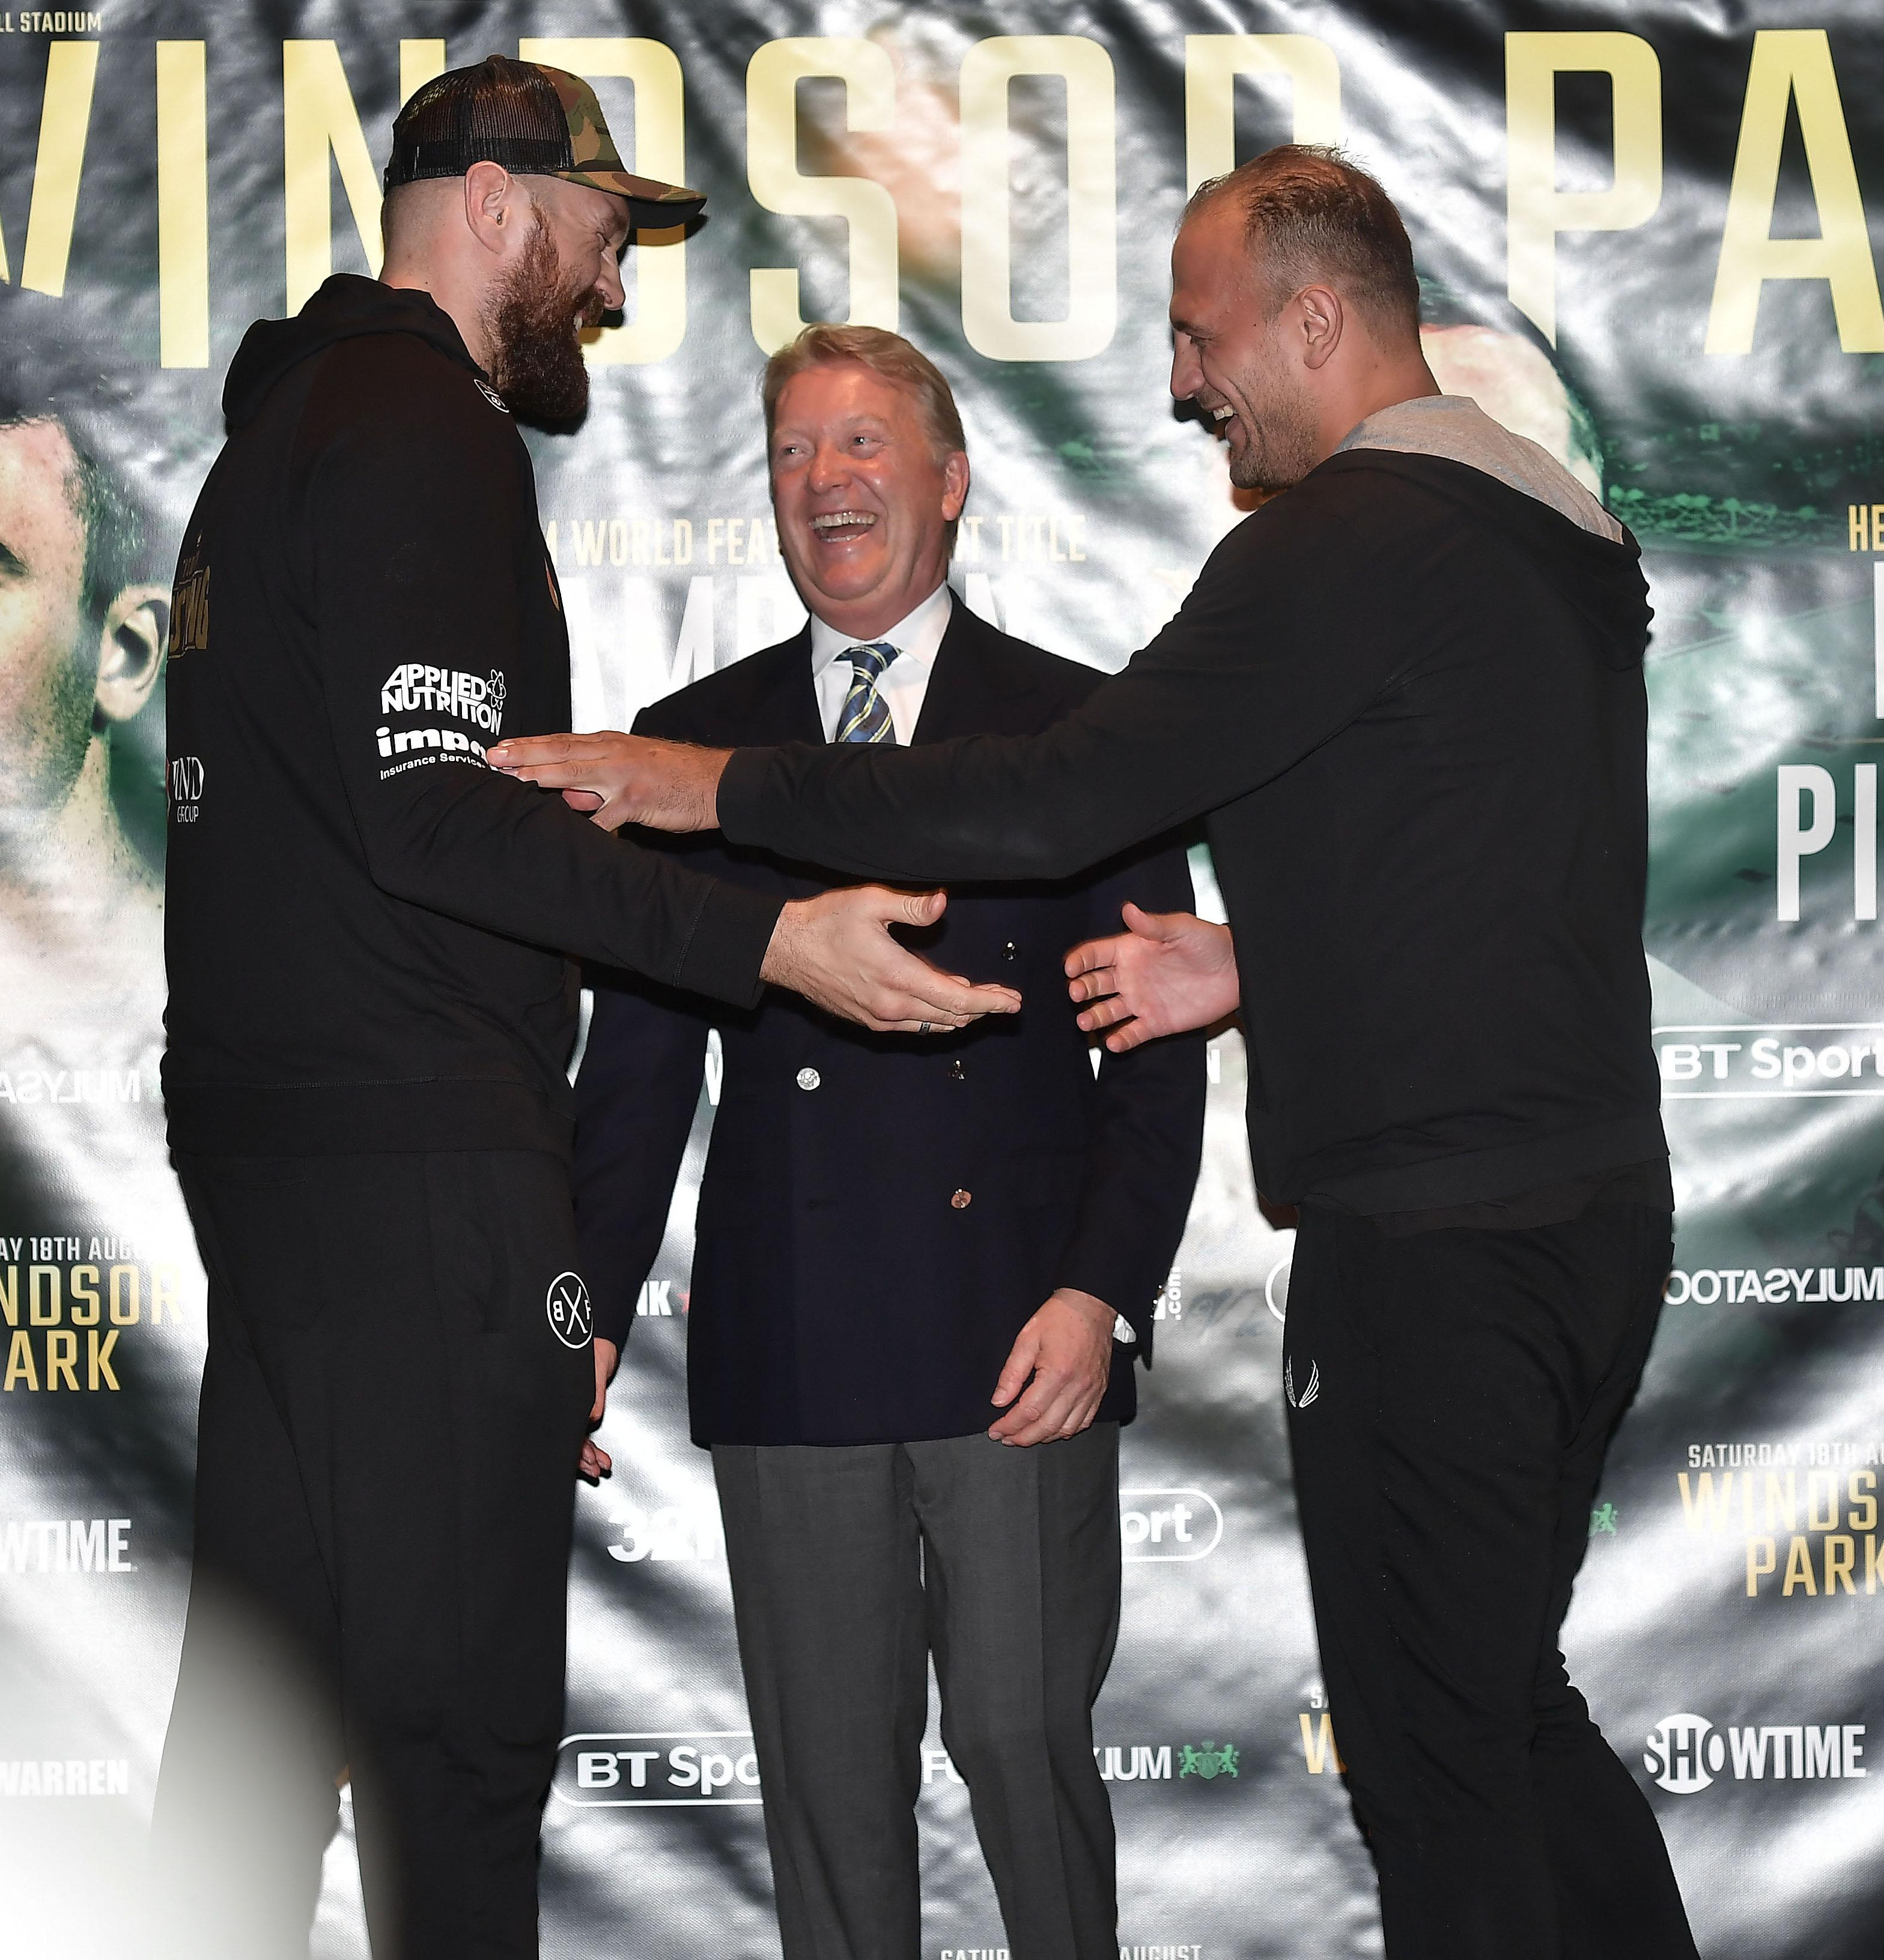 Frank Warren is the middle man as Tyson Fury takes a gentle dig in the ribs from Italian opponent Francesco Pianeta